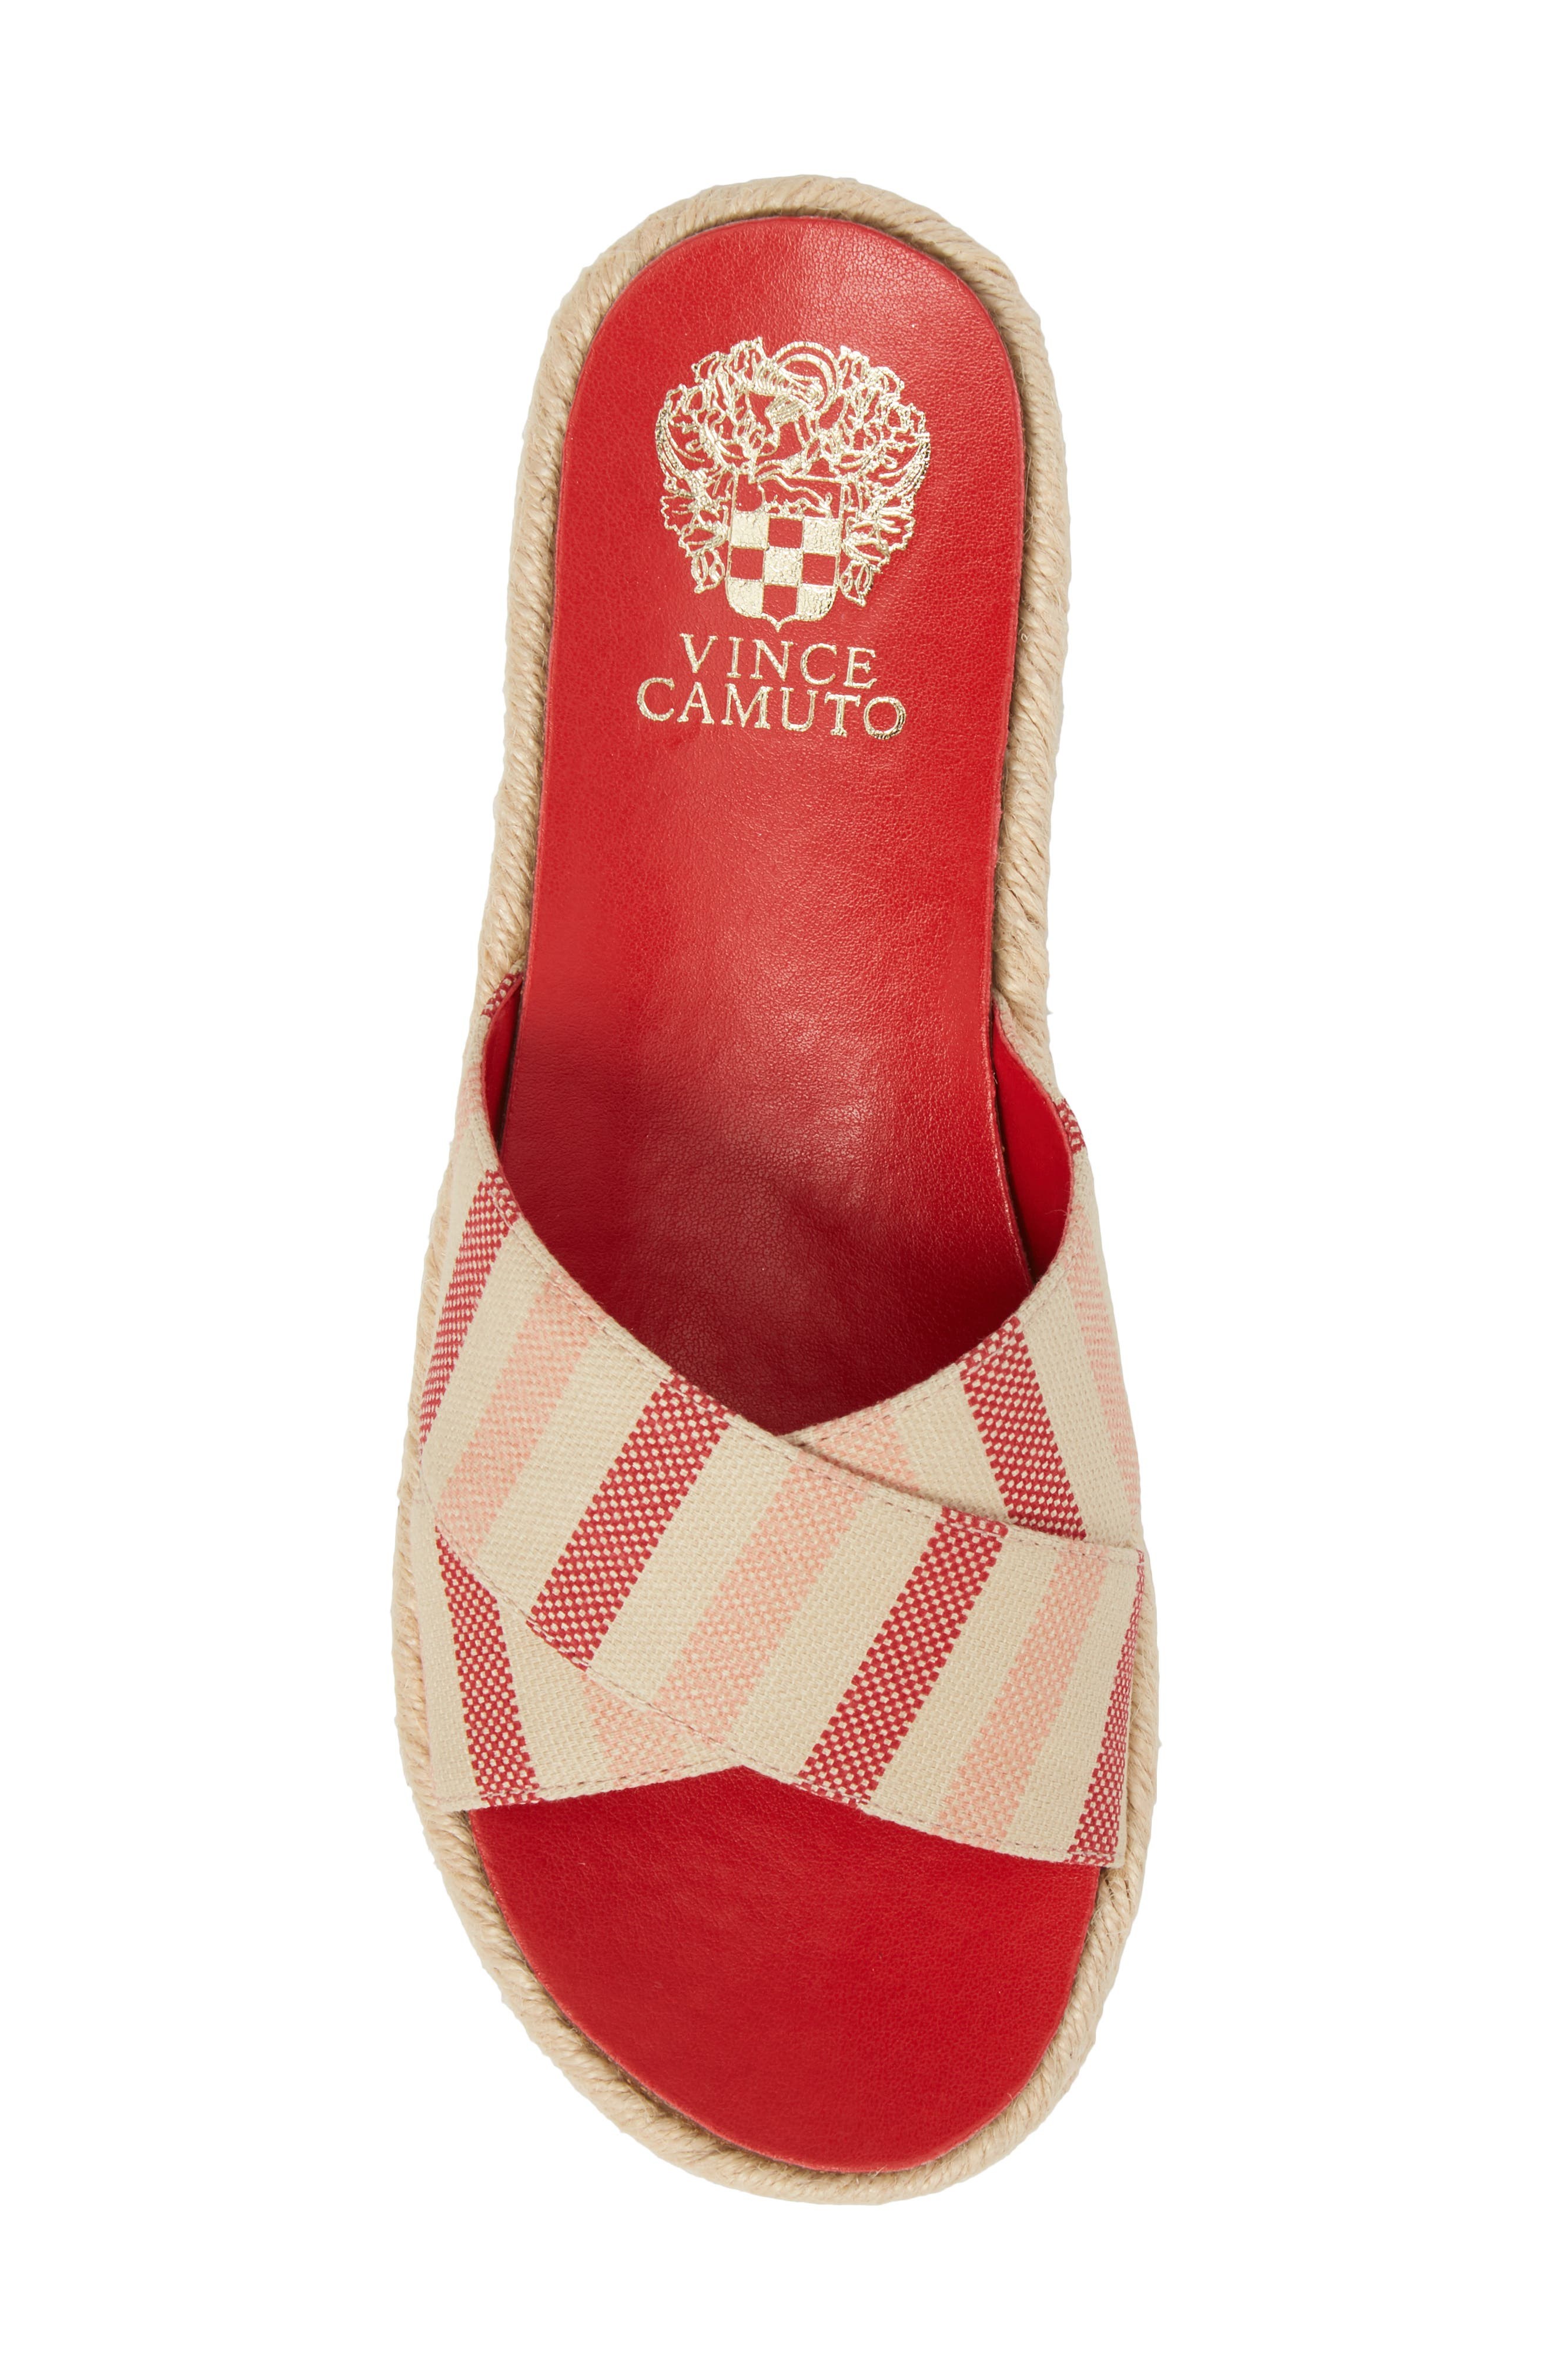 Carran Platform Sandal,                             Alternate thumbnail 5, color,                             Red Hot Rio Stripe Canvas